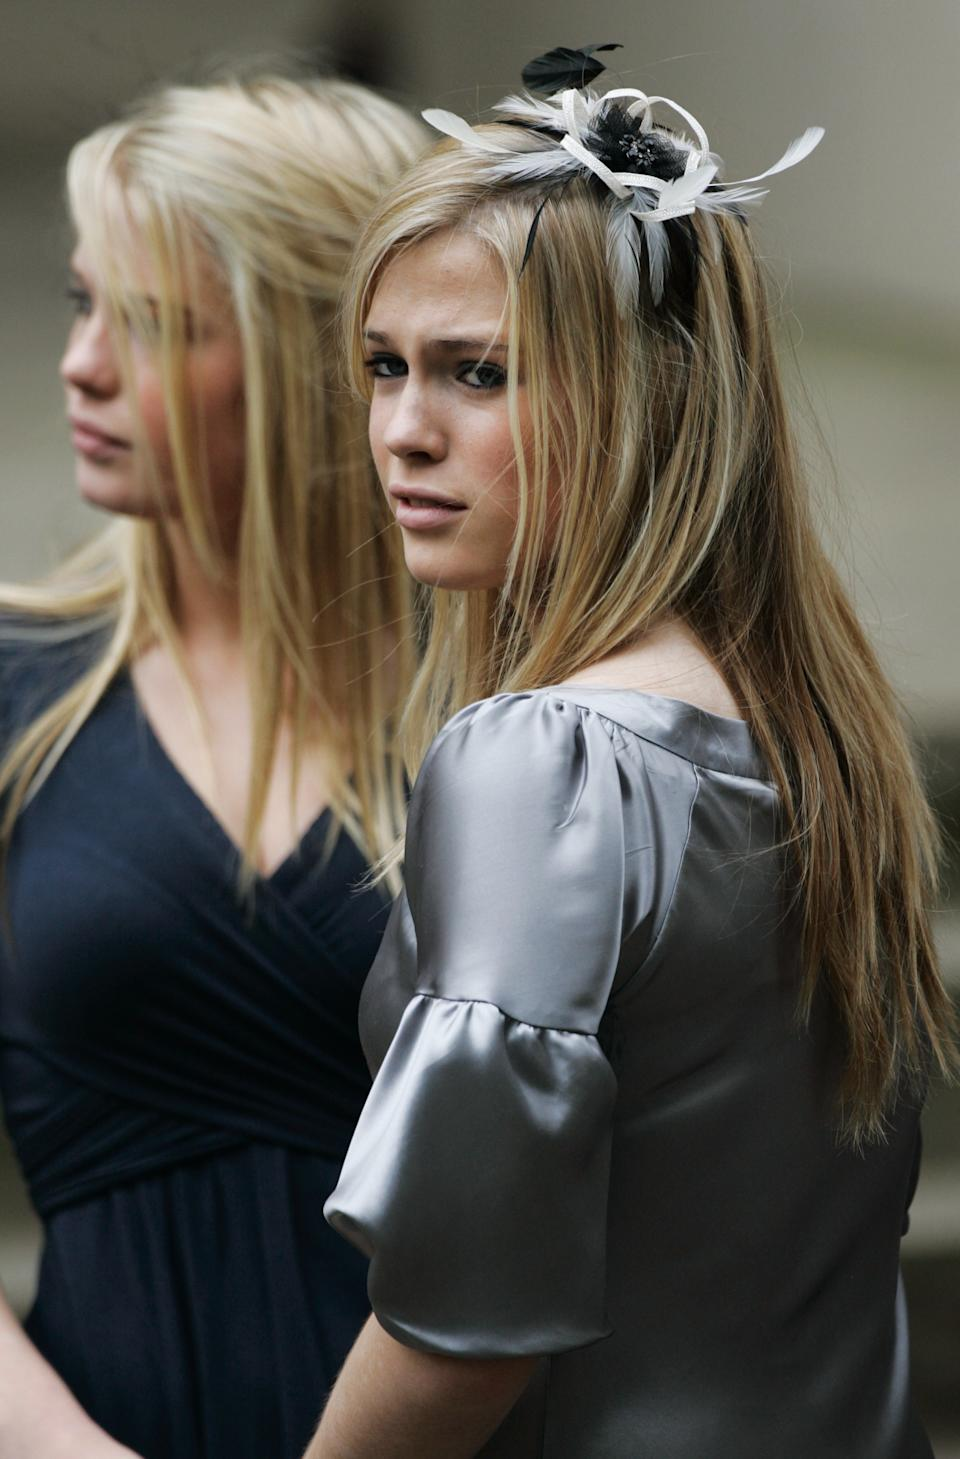 LONDON, ENGLAND - AUGUST 31: Diana's neices Amelia Spencer and Eliza Spencer at the 10th Anniversary Memorial Service For Diana, Princess of Wales at Guards Chapel at Wellington Barracks on August 31, 2007 in London, England. (Photo by Tim Graham Photo Library via Getty Images)